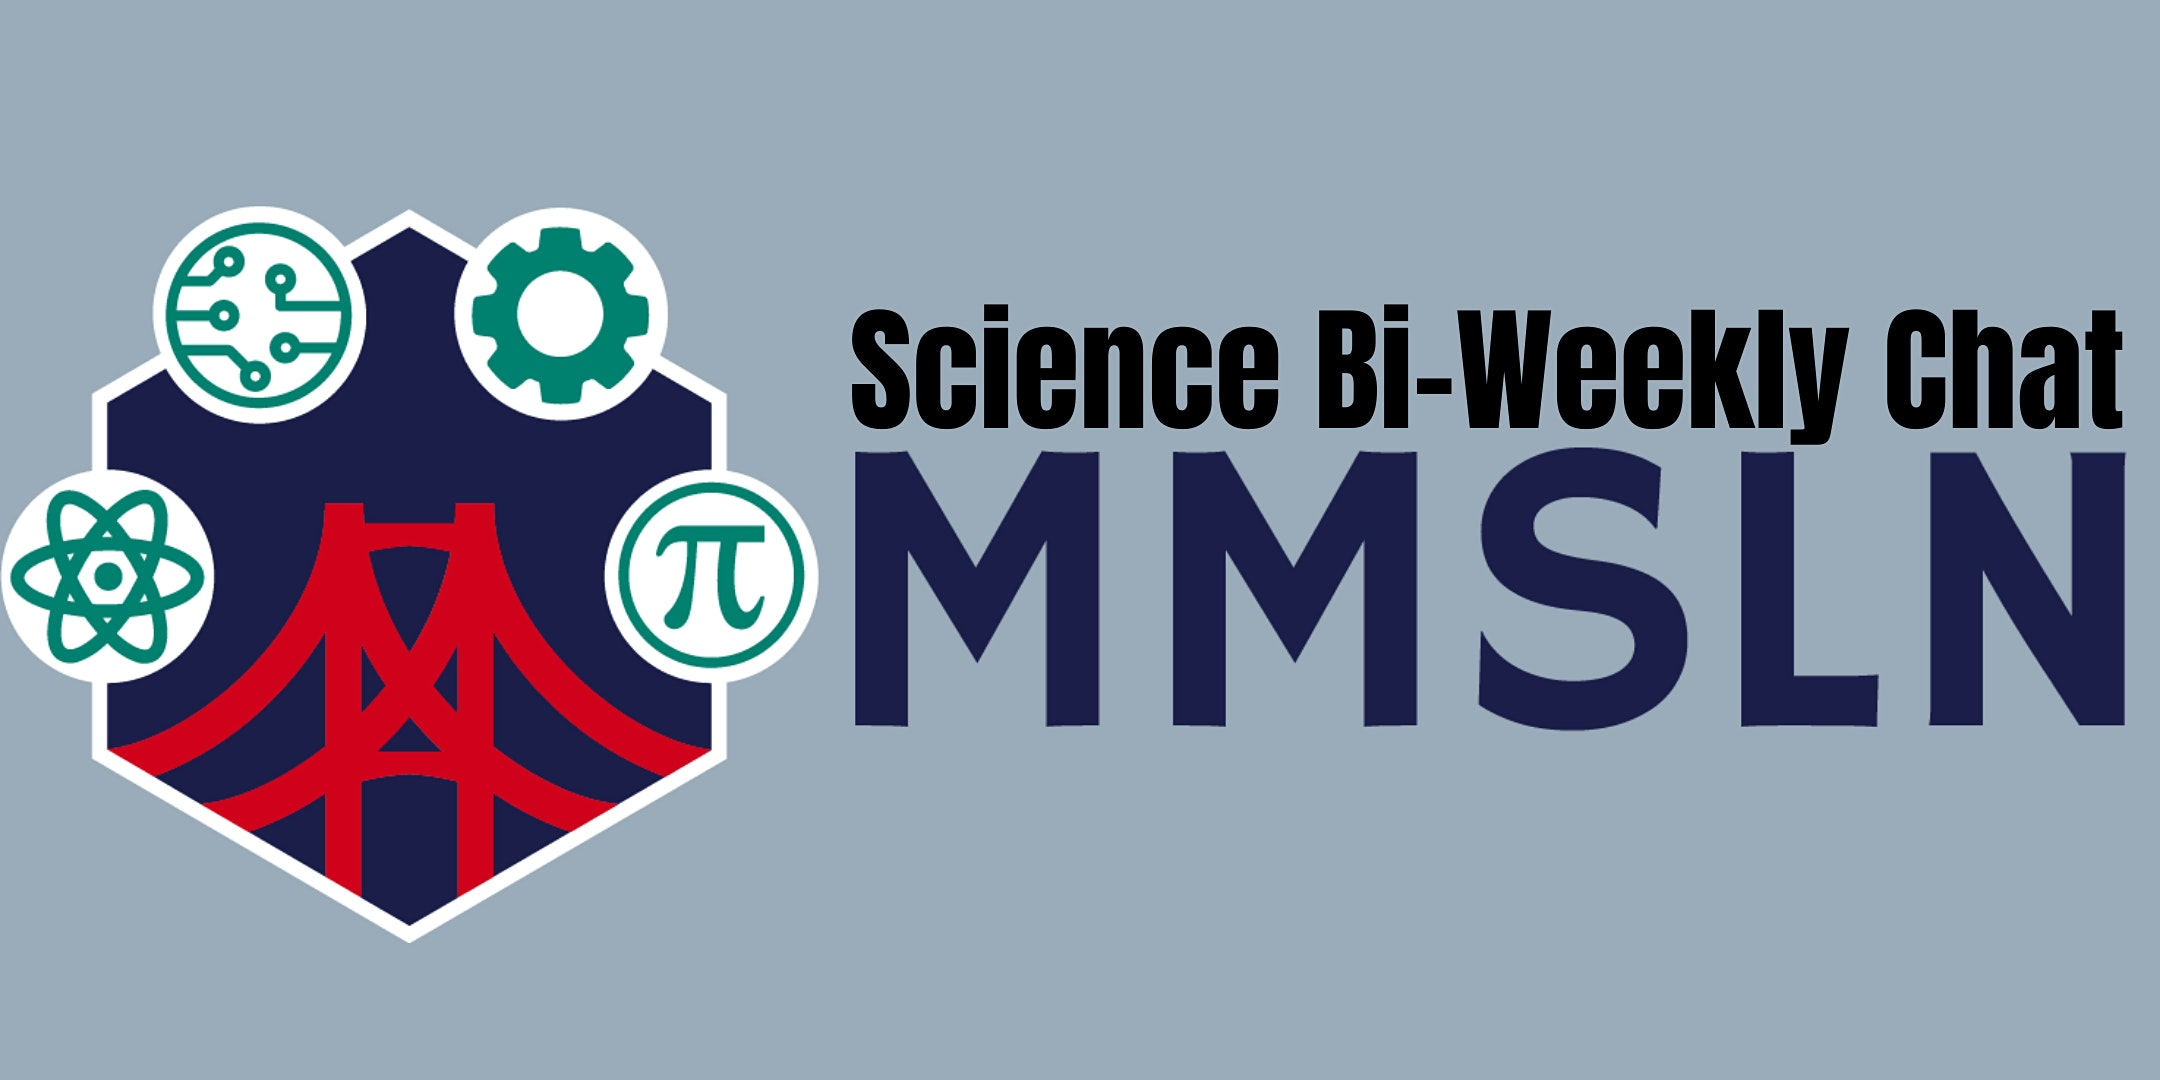 Science Bi-Weekly Chat -February 18, 2021